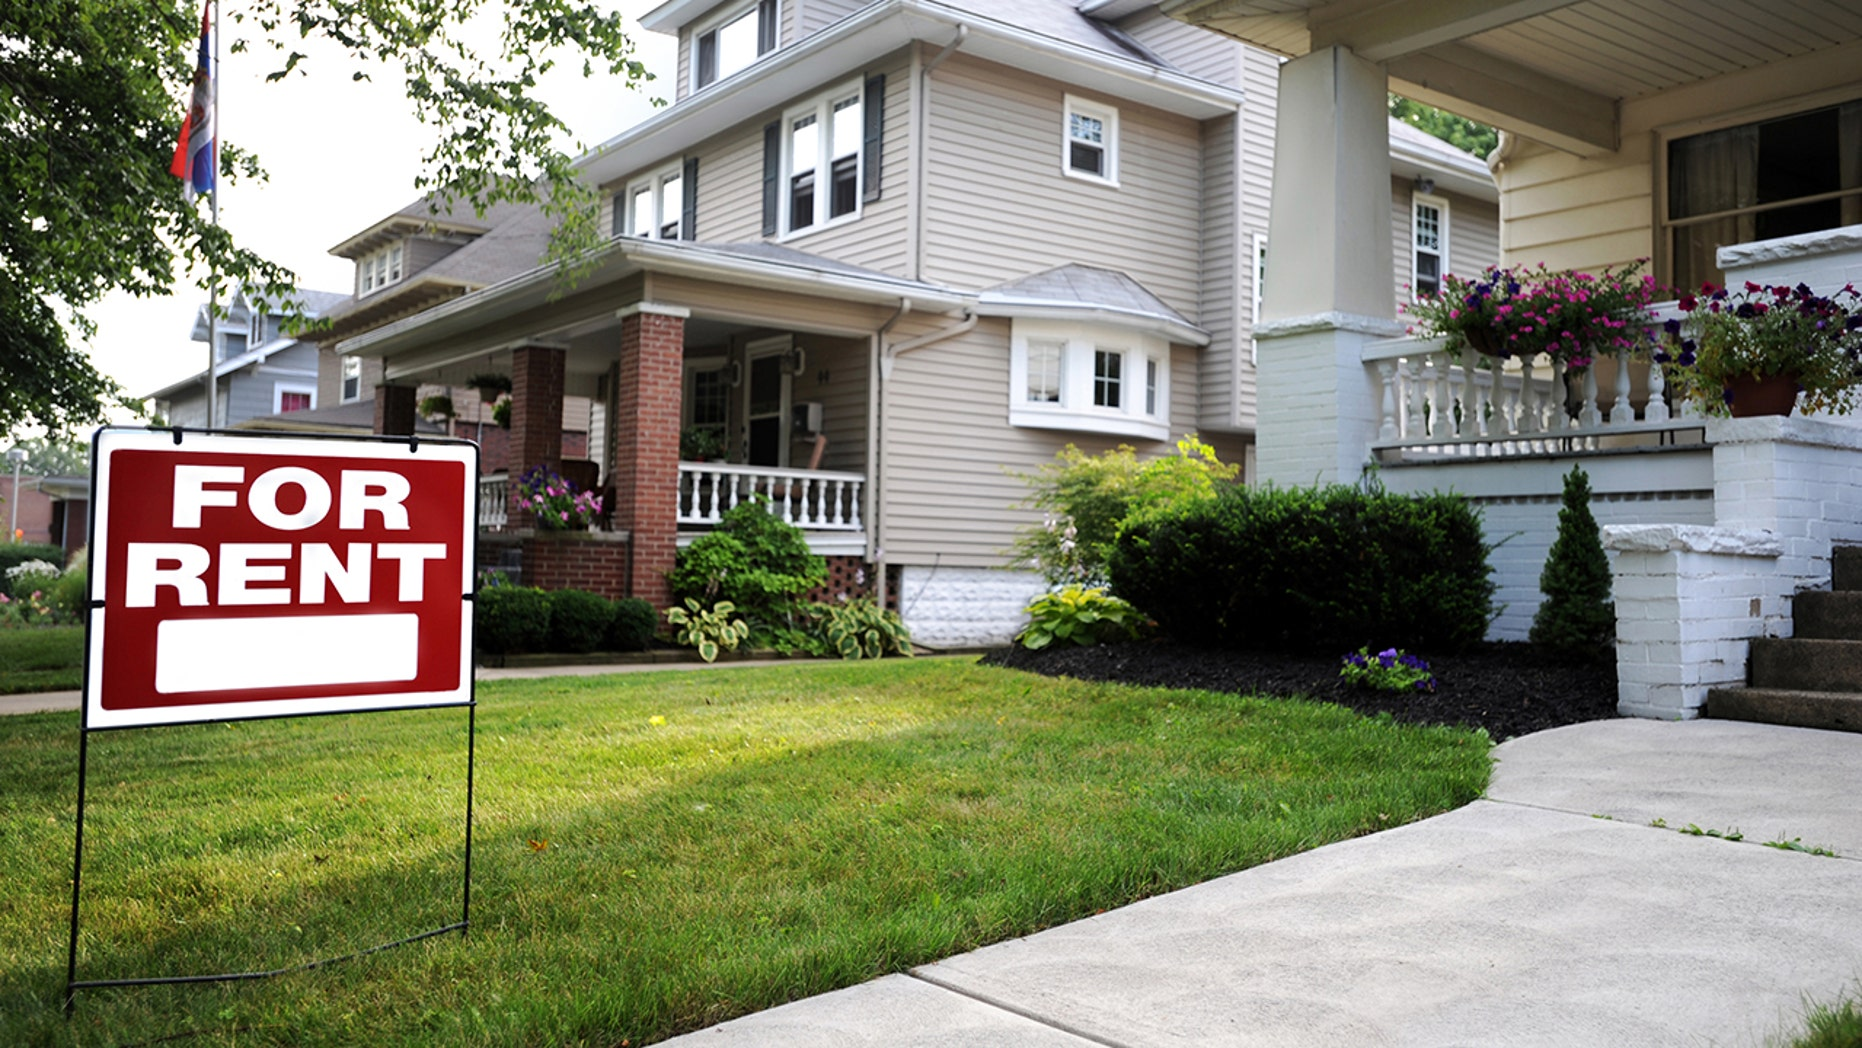 Avoid these rental scams when looking for your next home.